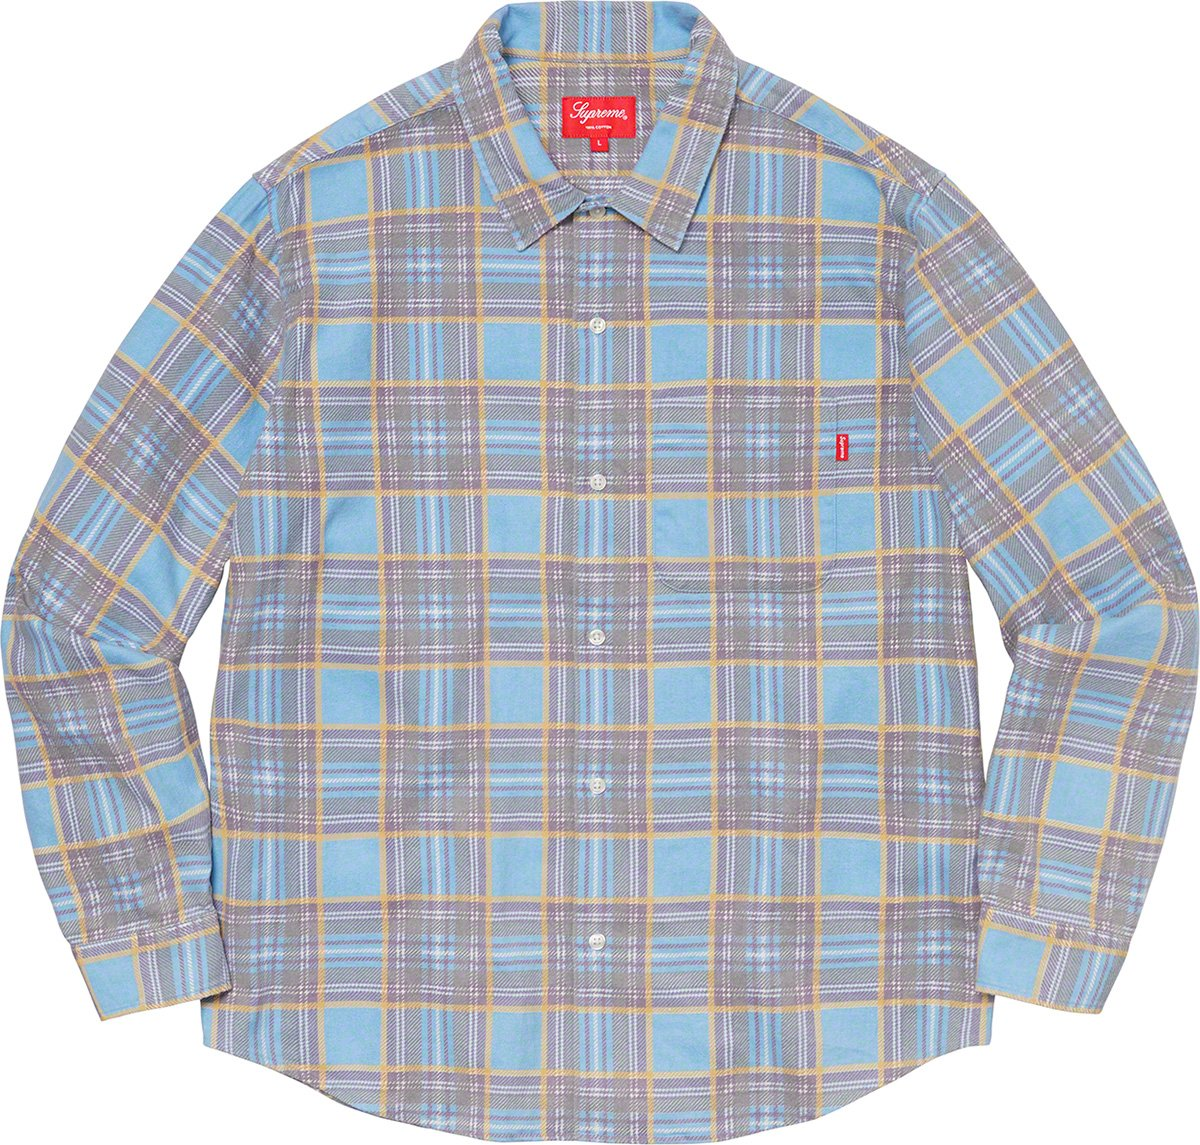 supreme-20ss-spring-summer-printed-plaid-shirt